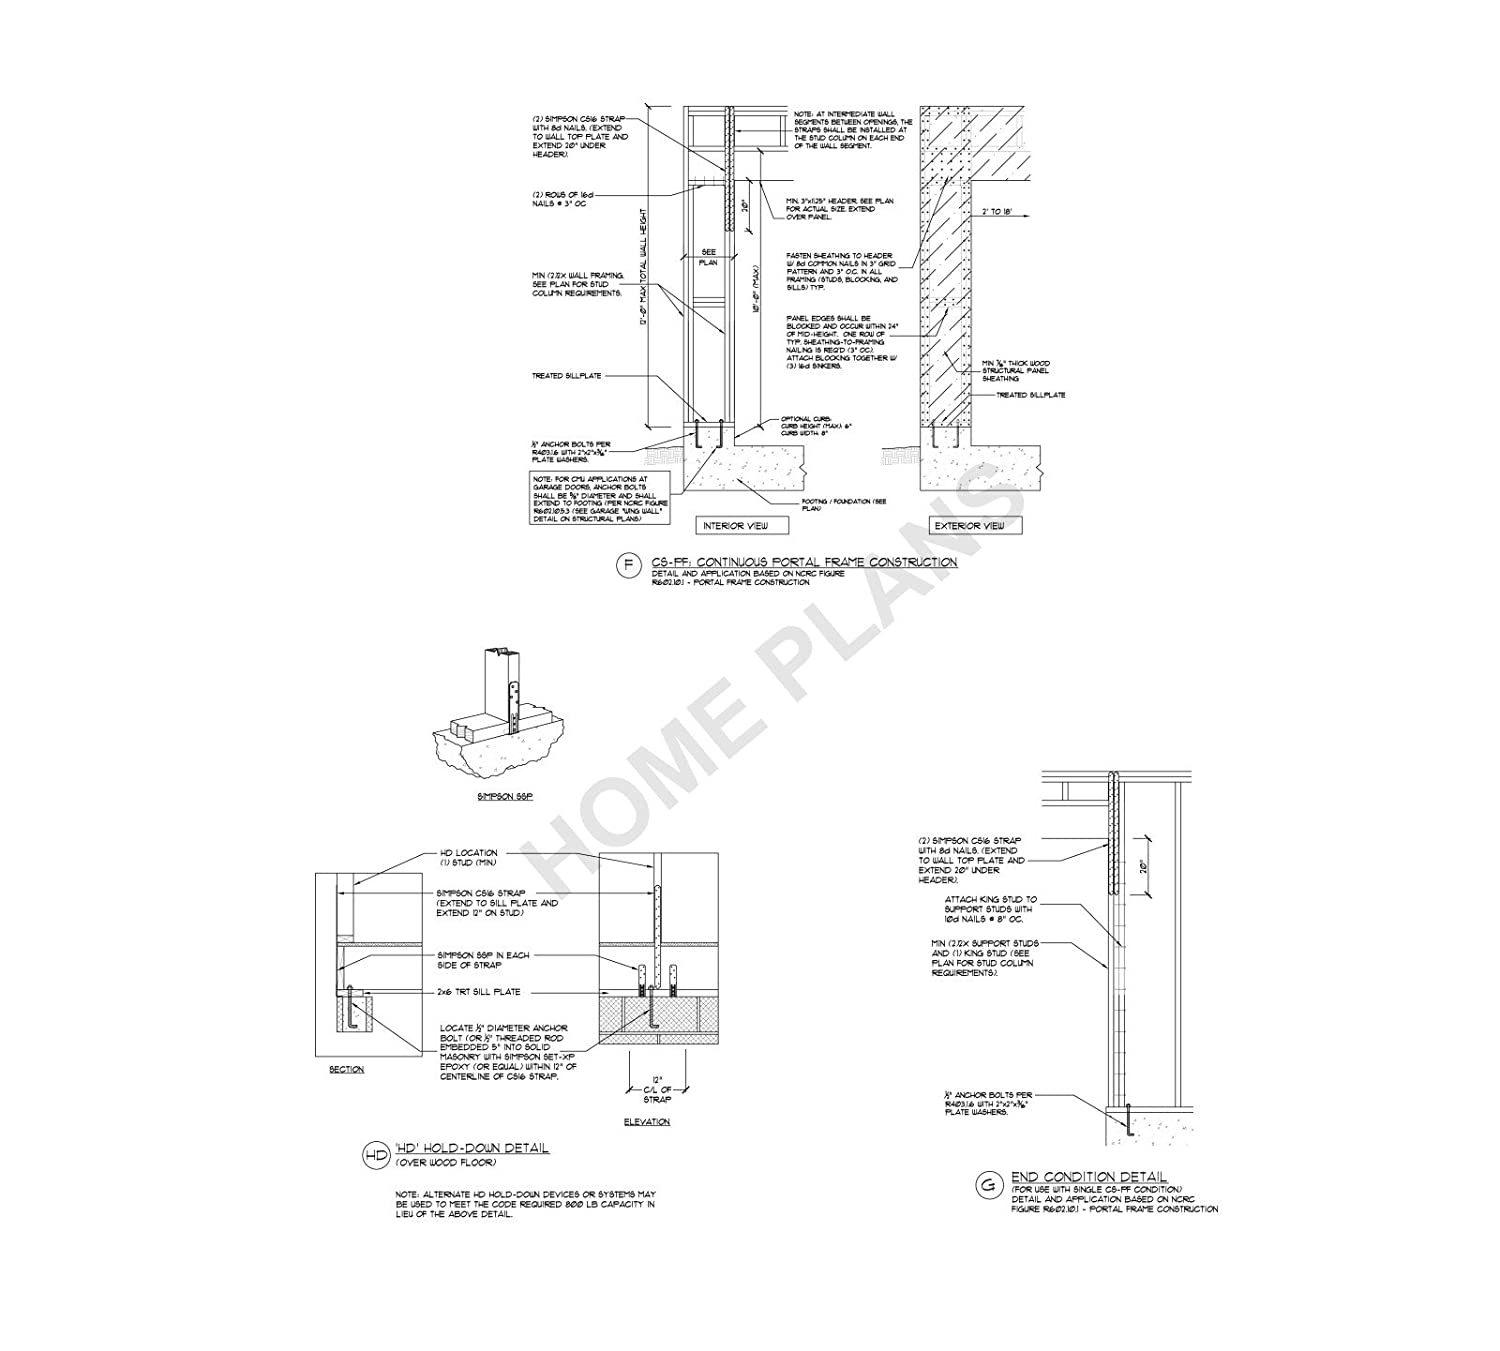 Sq Ft Htd Unht Plan P 1271 Home House Drawings Plans Autocad Design Drafting Cs Architectural Struc W Cad File Posters Prints